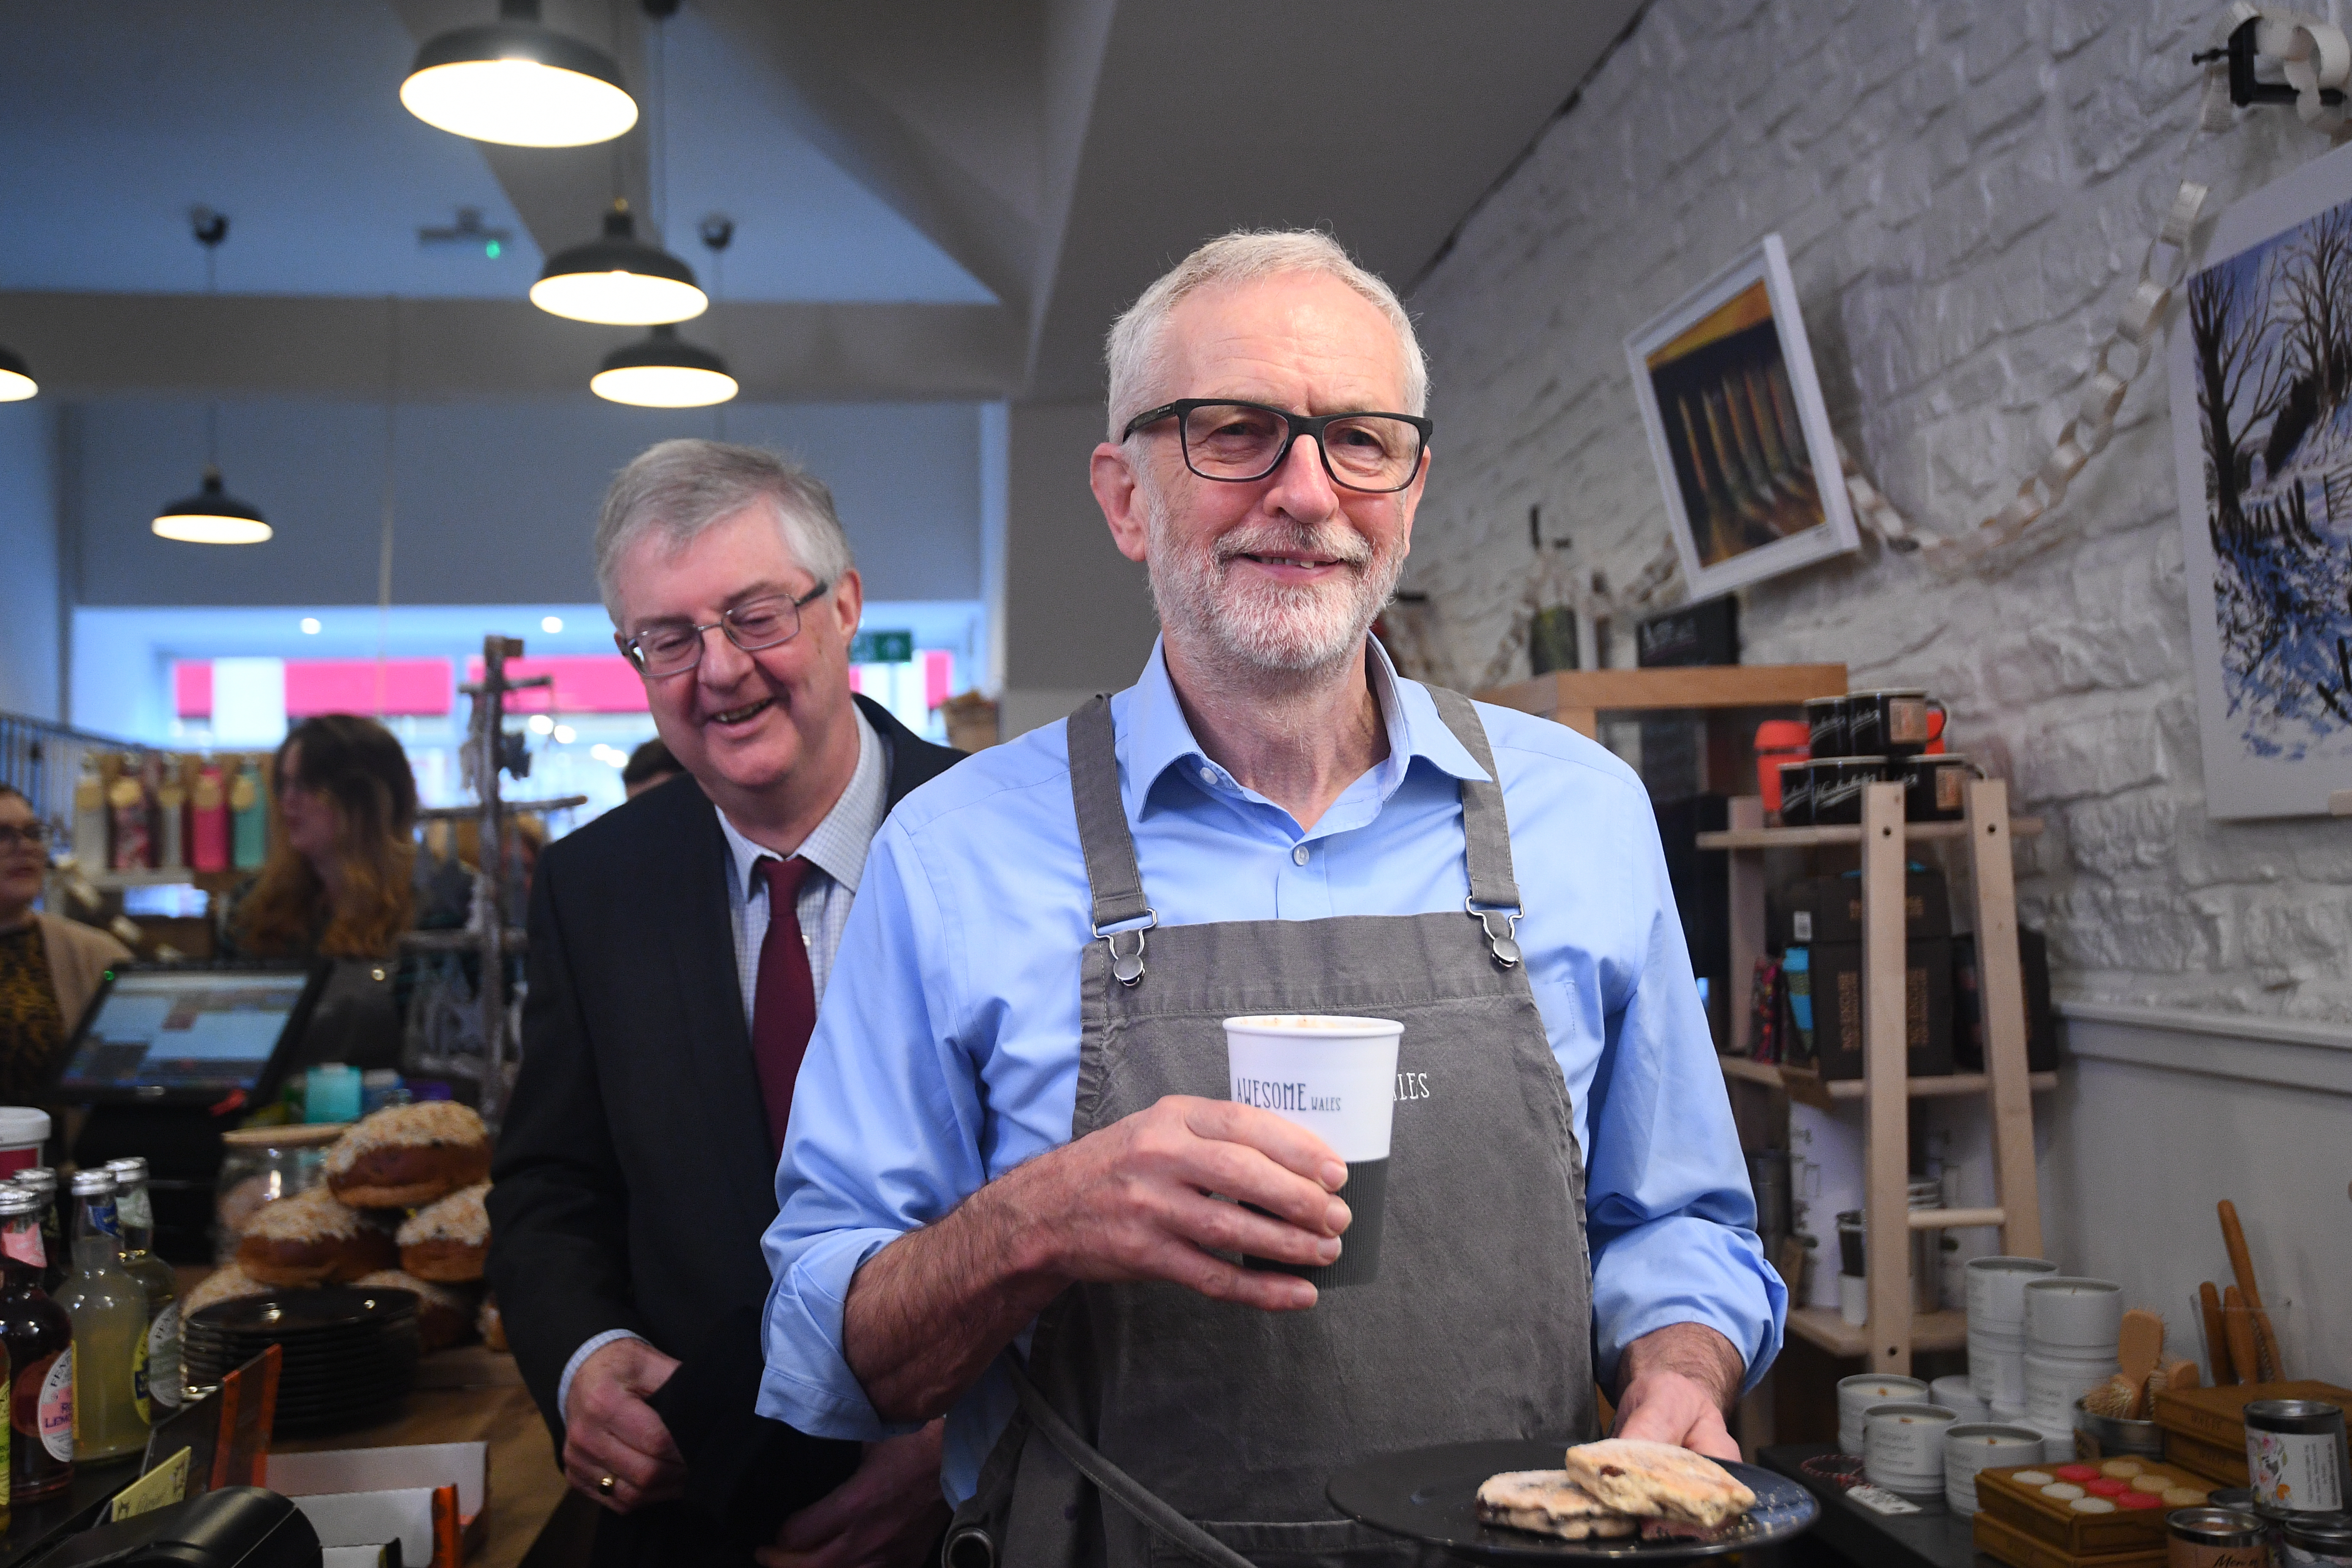 Labour Party leader Jeremy Corbyn in a coffee shop in Barry to mark Small Business Saturday, while on the General Election campaign trail in Wales.